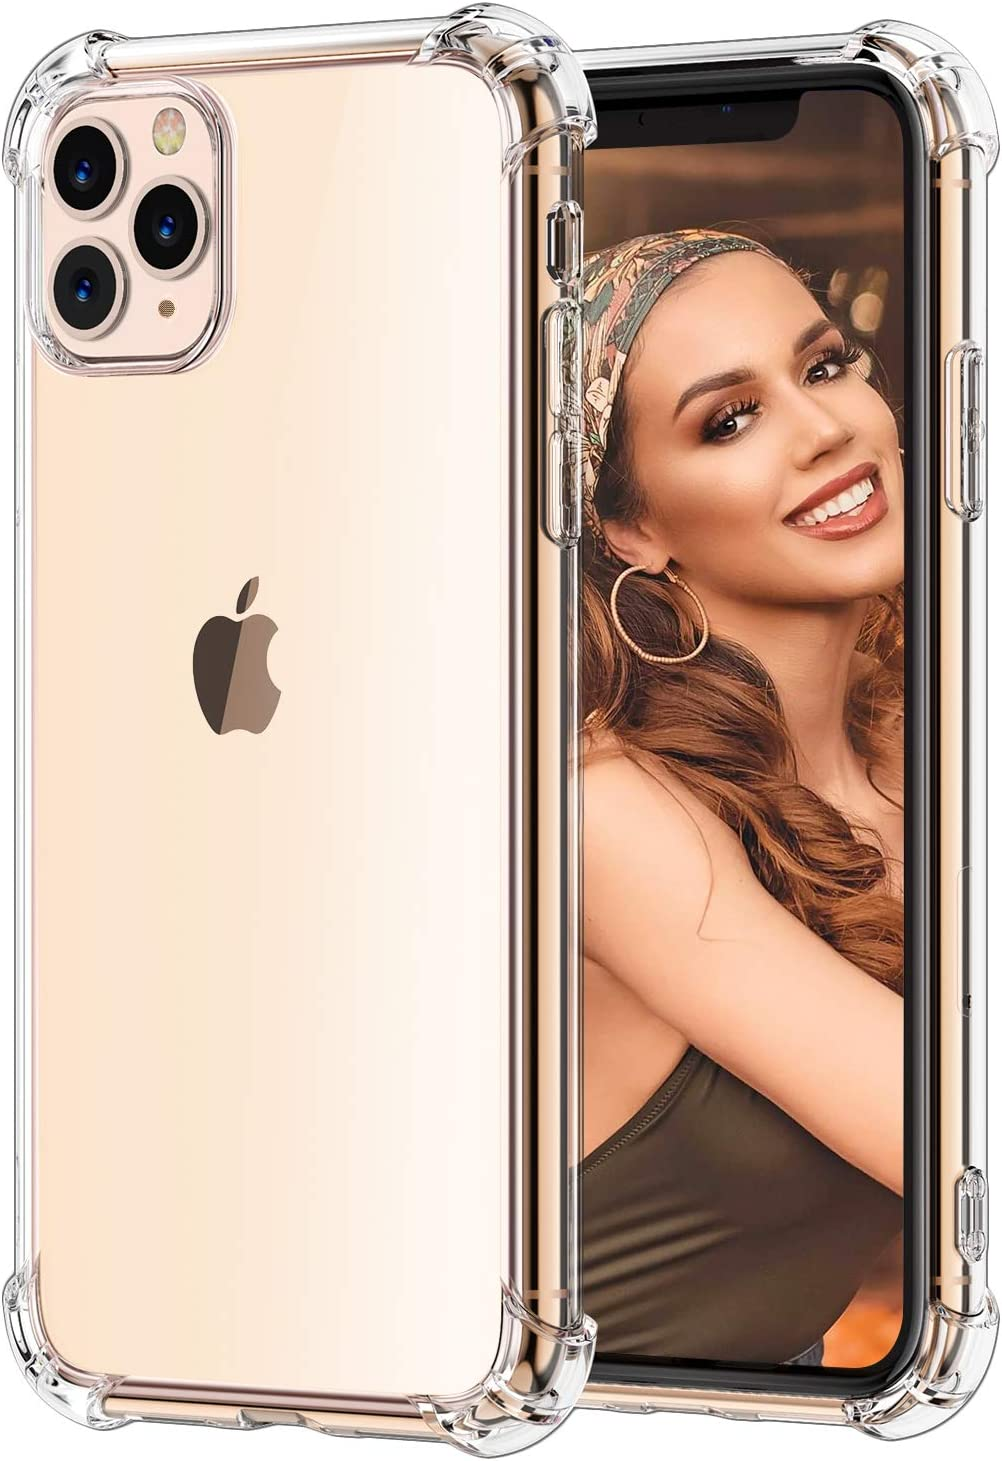 Matone for iPhone 11 Pro Case, Crystal Clear Slim Protective Cover with Reinforced Corner Bumpers, Flexible Soft TPU Cases Compatible with Apple iPhone 11 Pro (2019) 5.8-Inch